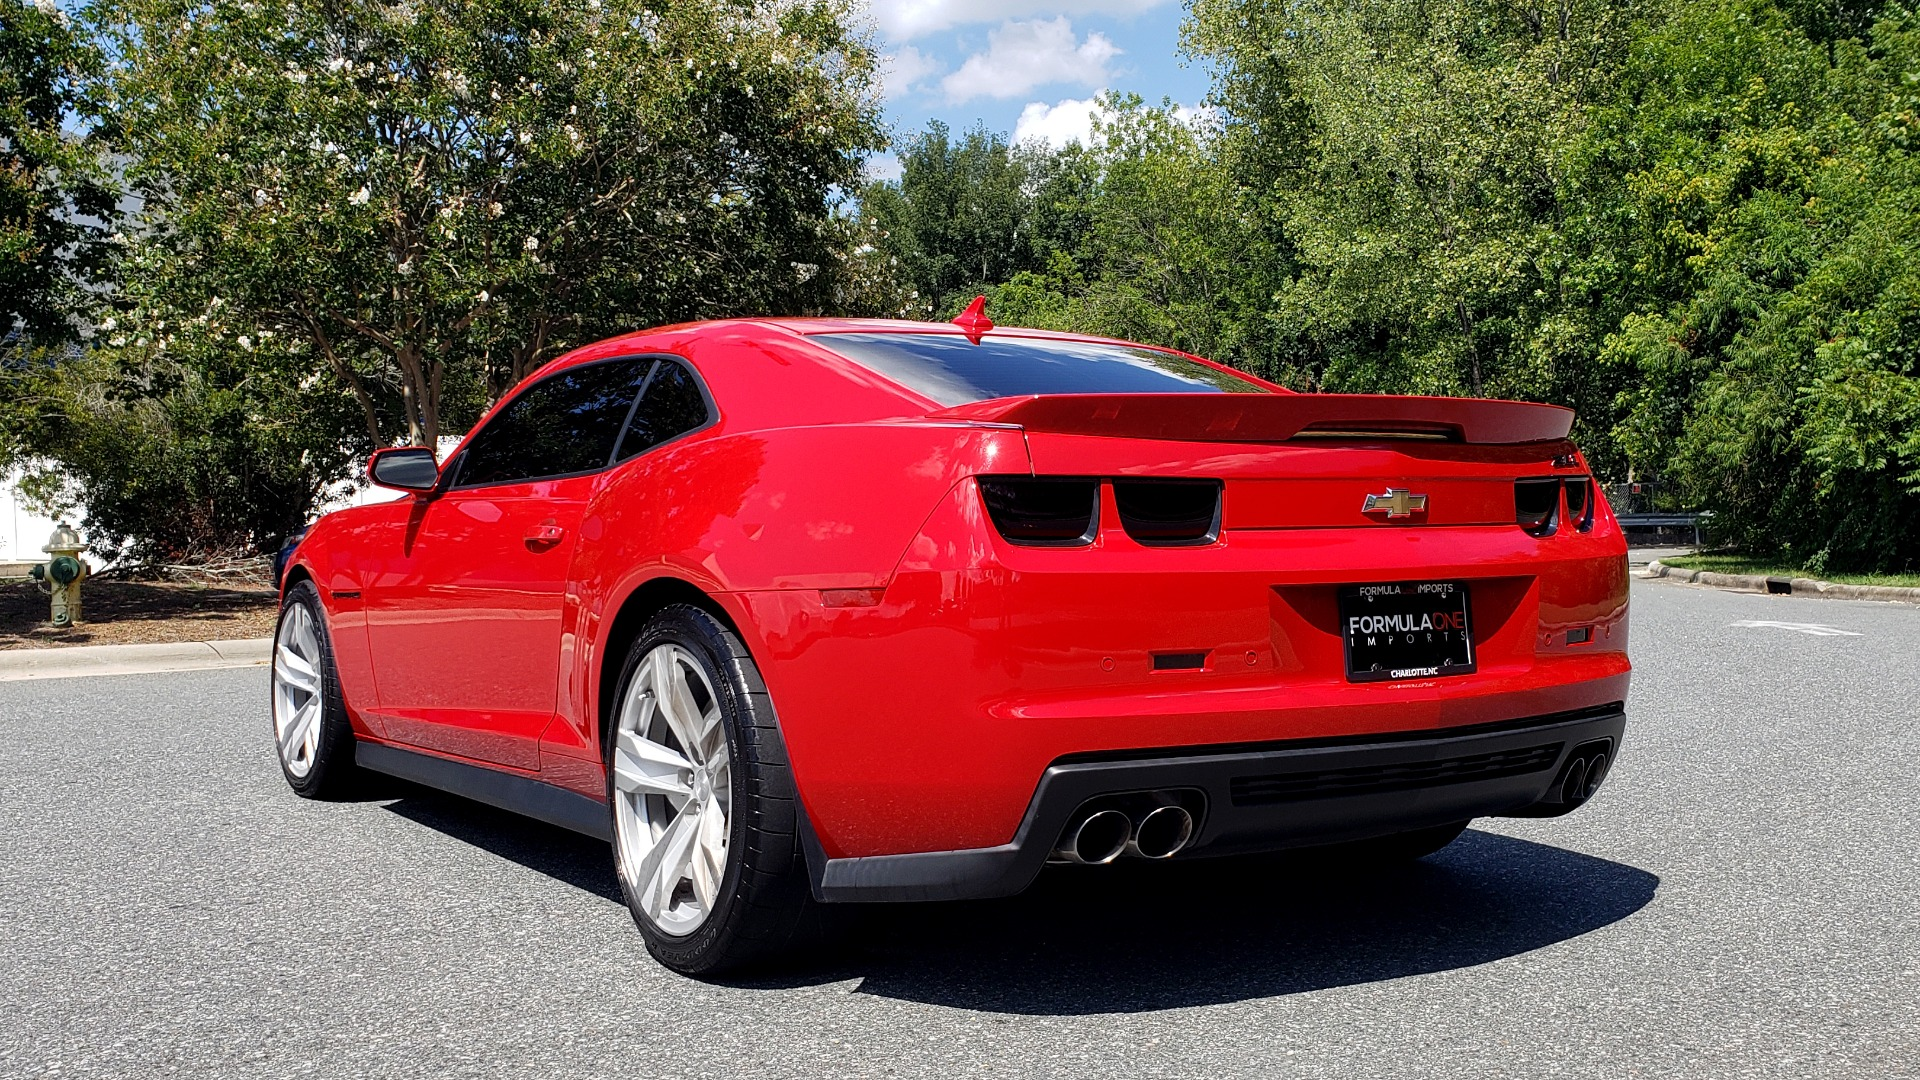 Used 2013 Chevrolet CAMARO ZL1 / 6.2L SUPERCHARGED 580HP / 6-SPD AUTO / NAV / REARVIEW for sale Sold at Formula Imports in Charlotte NC 28227 4